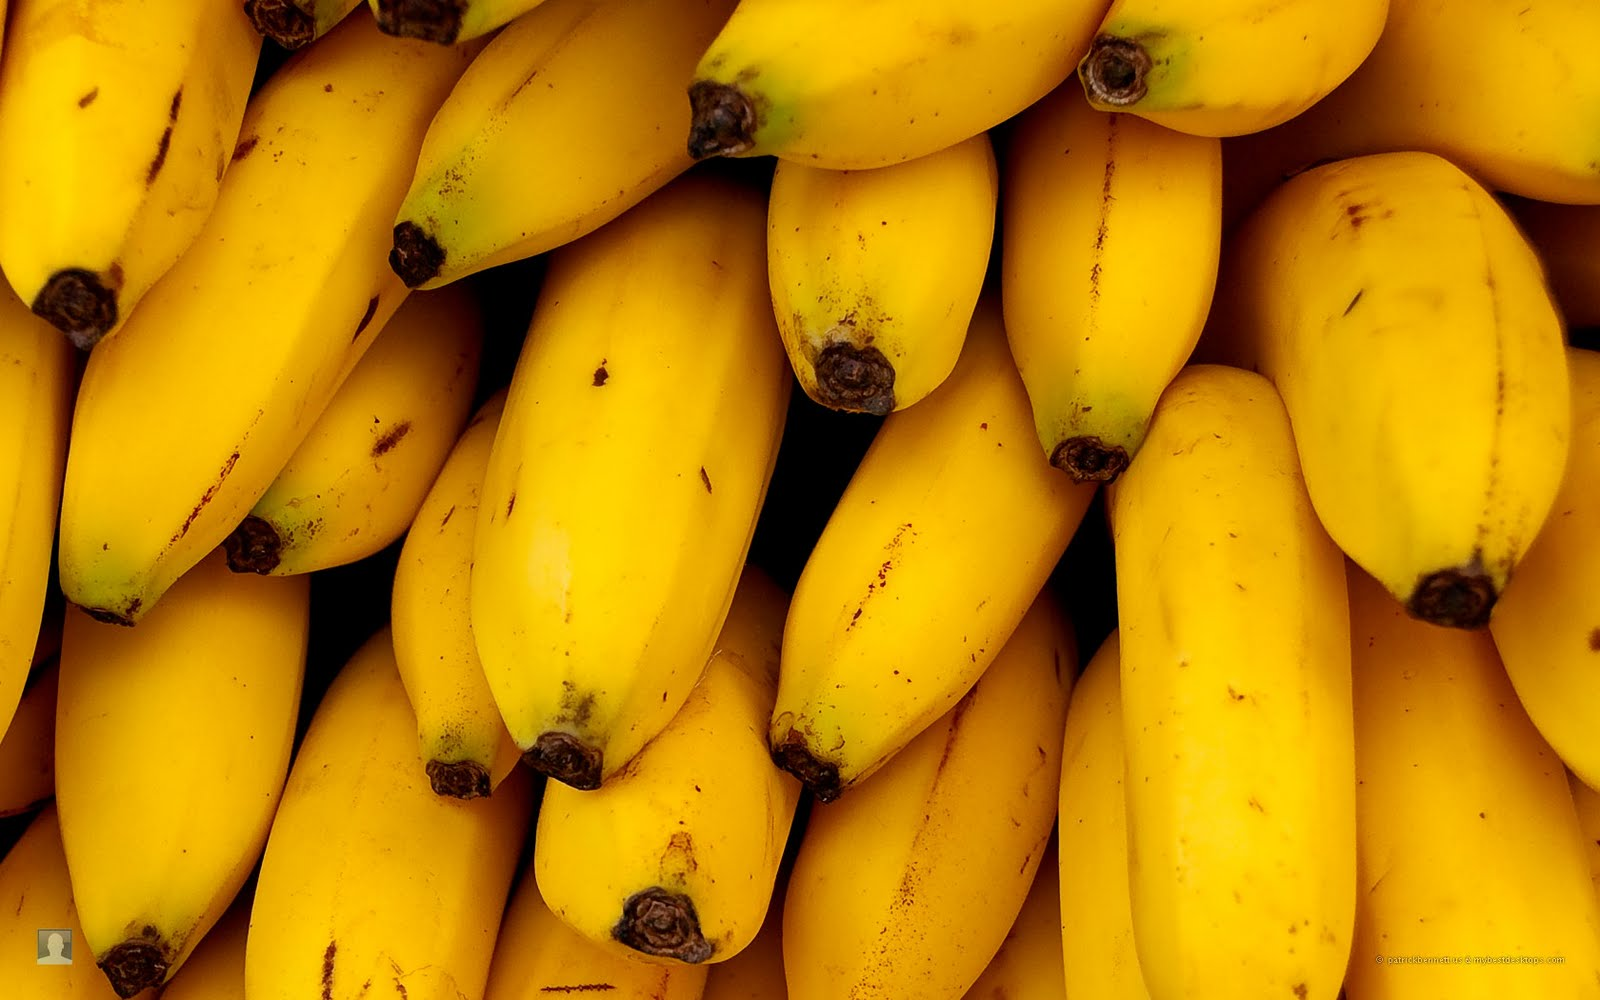 However, in November researchers at New York University reported that a chemical analysis of banana peel had found no intoxicating chemicals and that the high was mainly psychological. It was obvious at the time, at least to some of us, that the whole thing was a put-on.